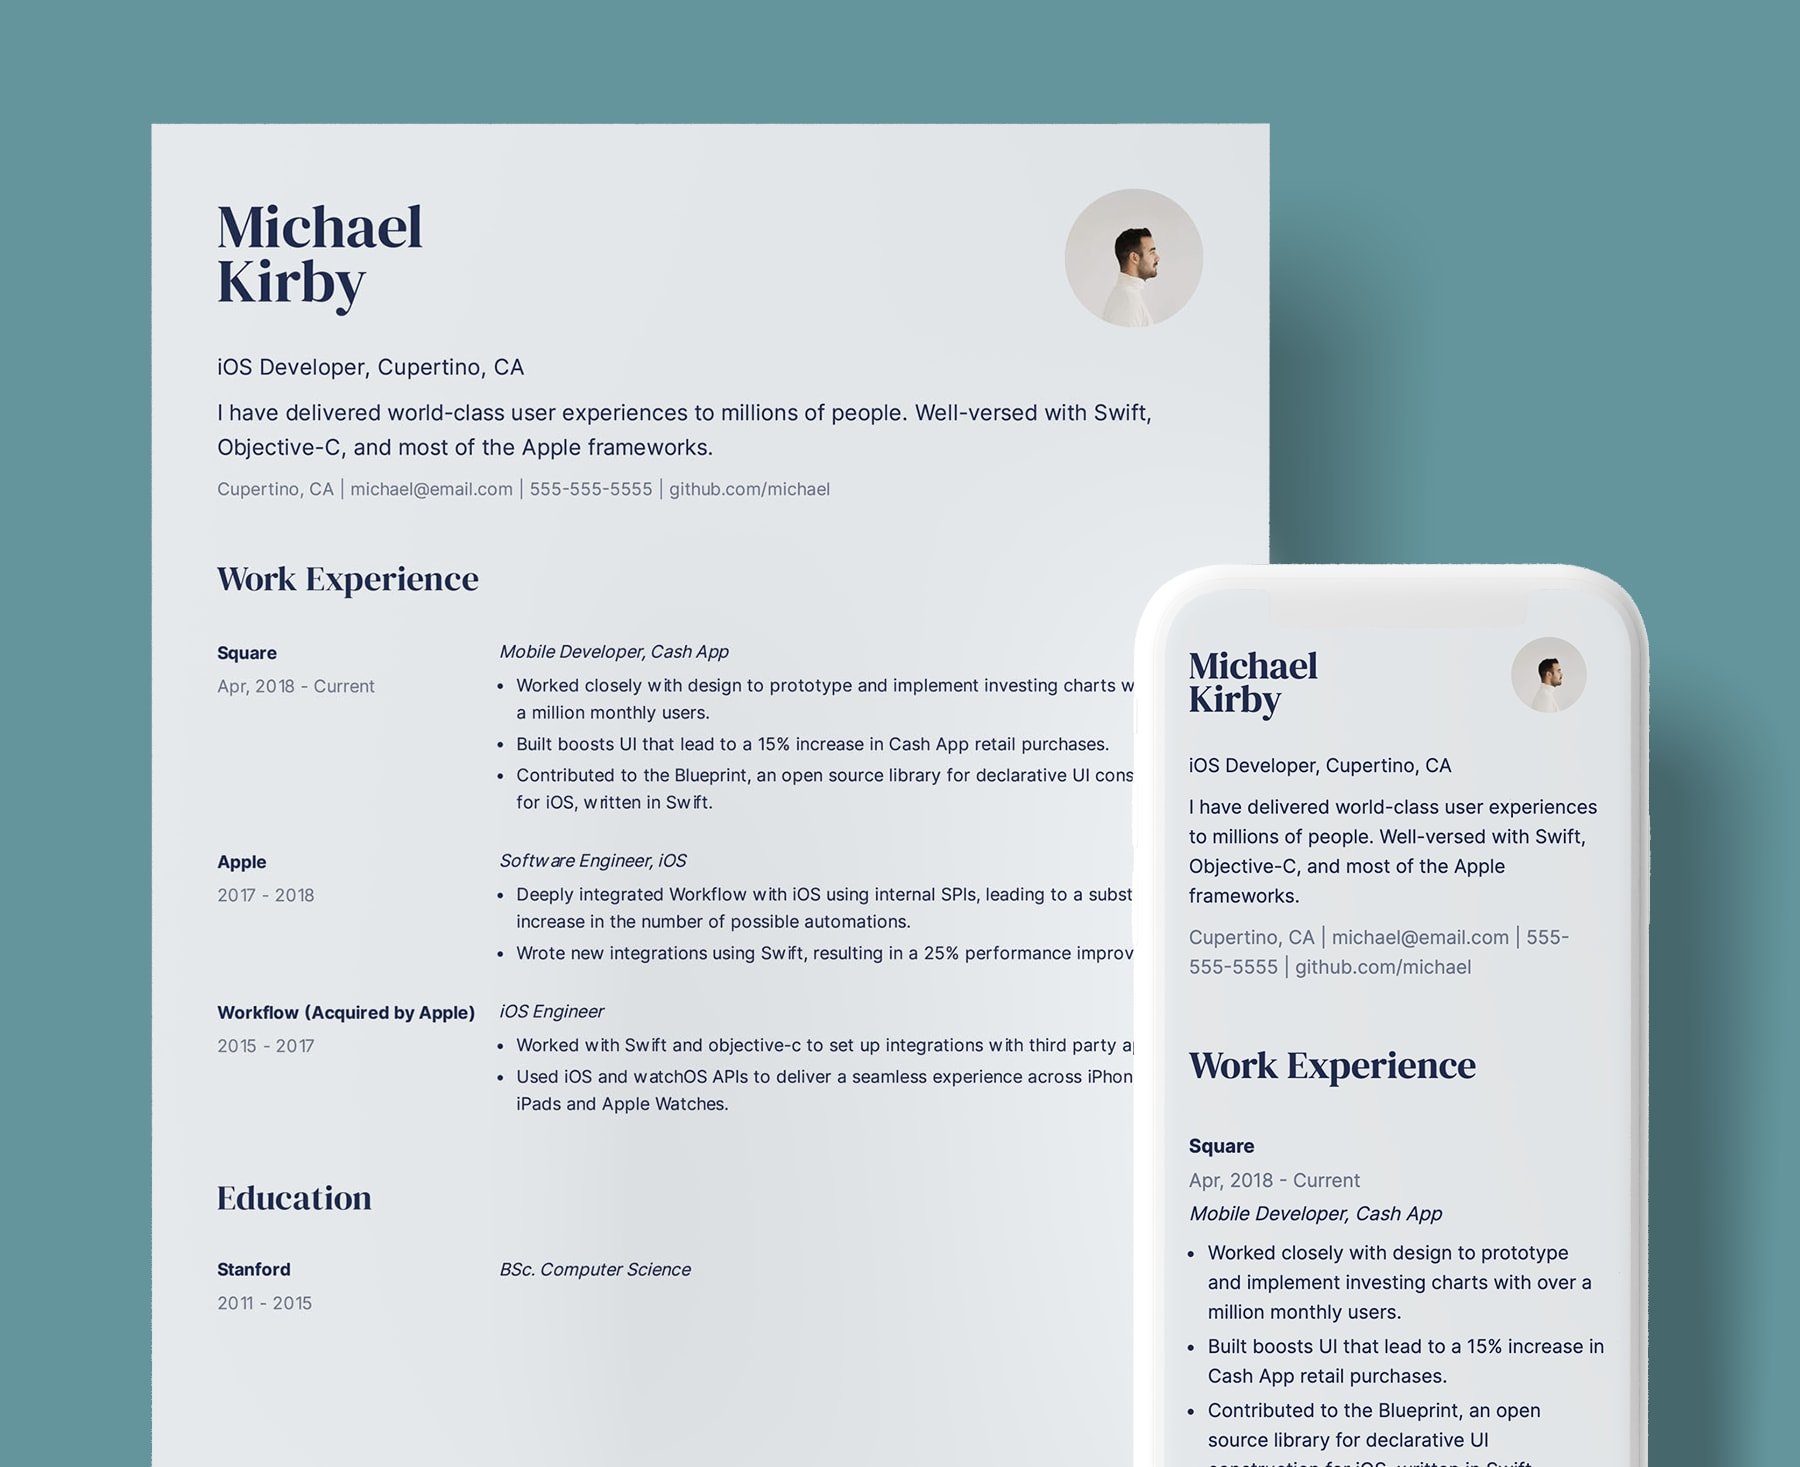 Seymore professional resume template for iOS Developers. Shown in web and PDF format.